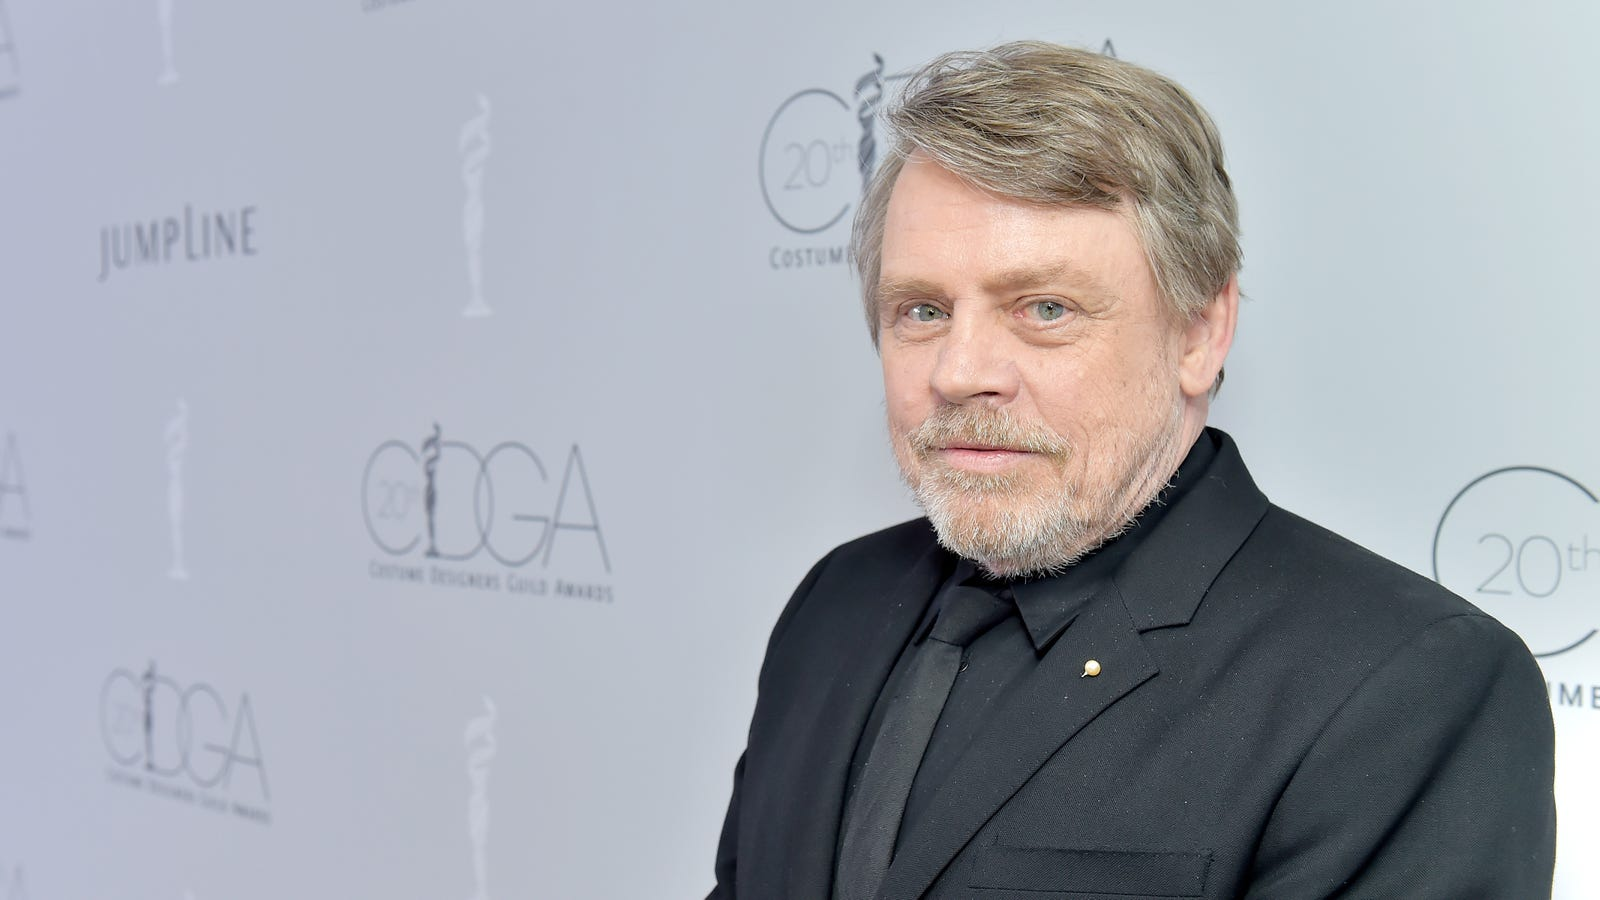 Mark Hamill's getting a star on the Hollywood Walk Of Fame